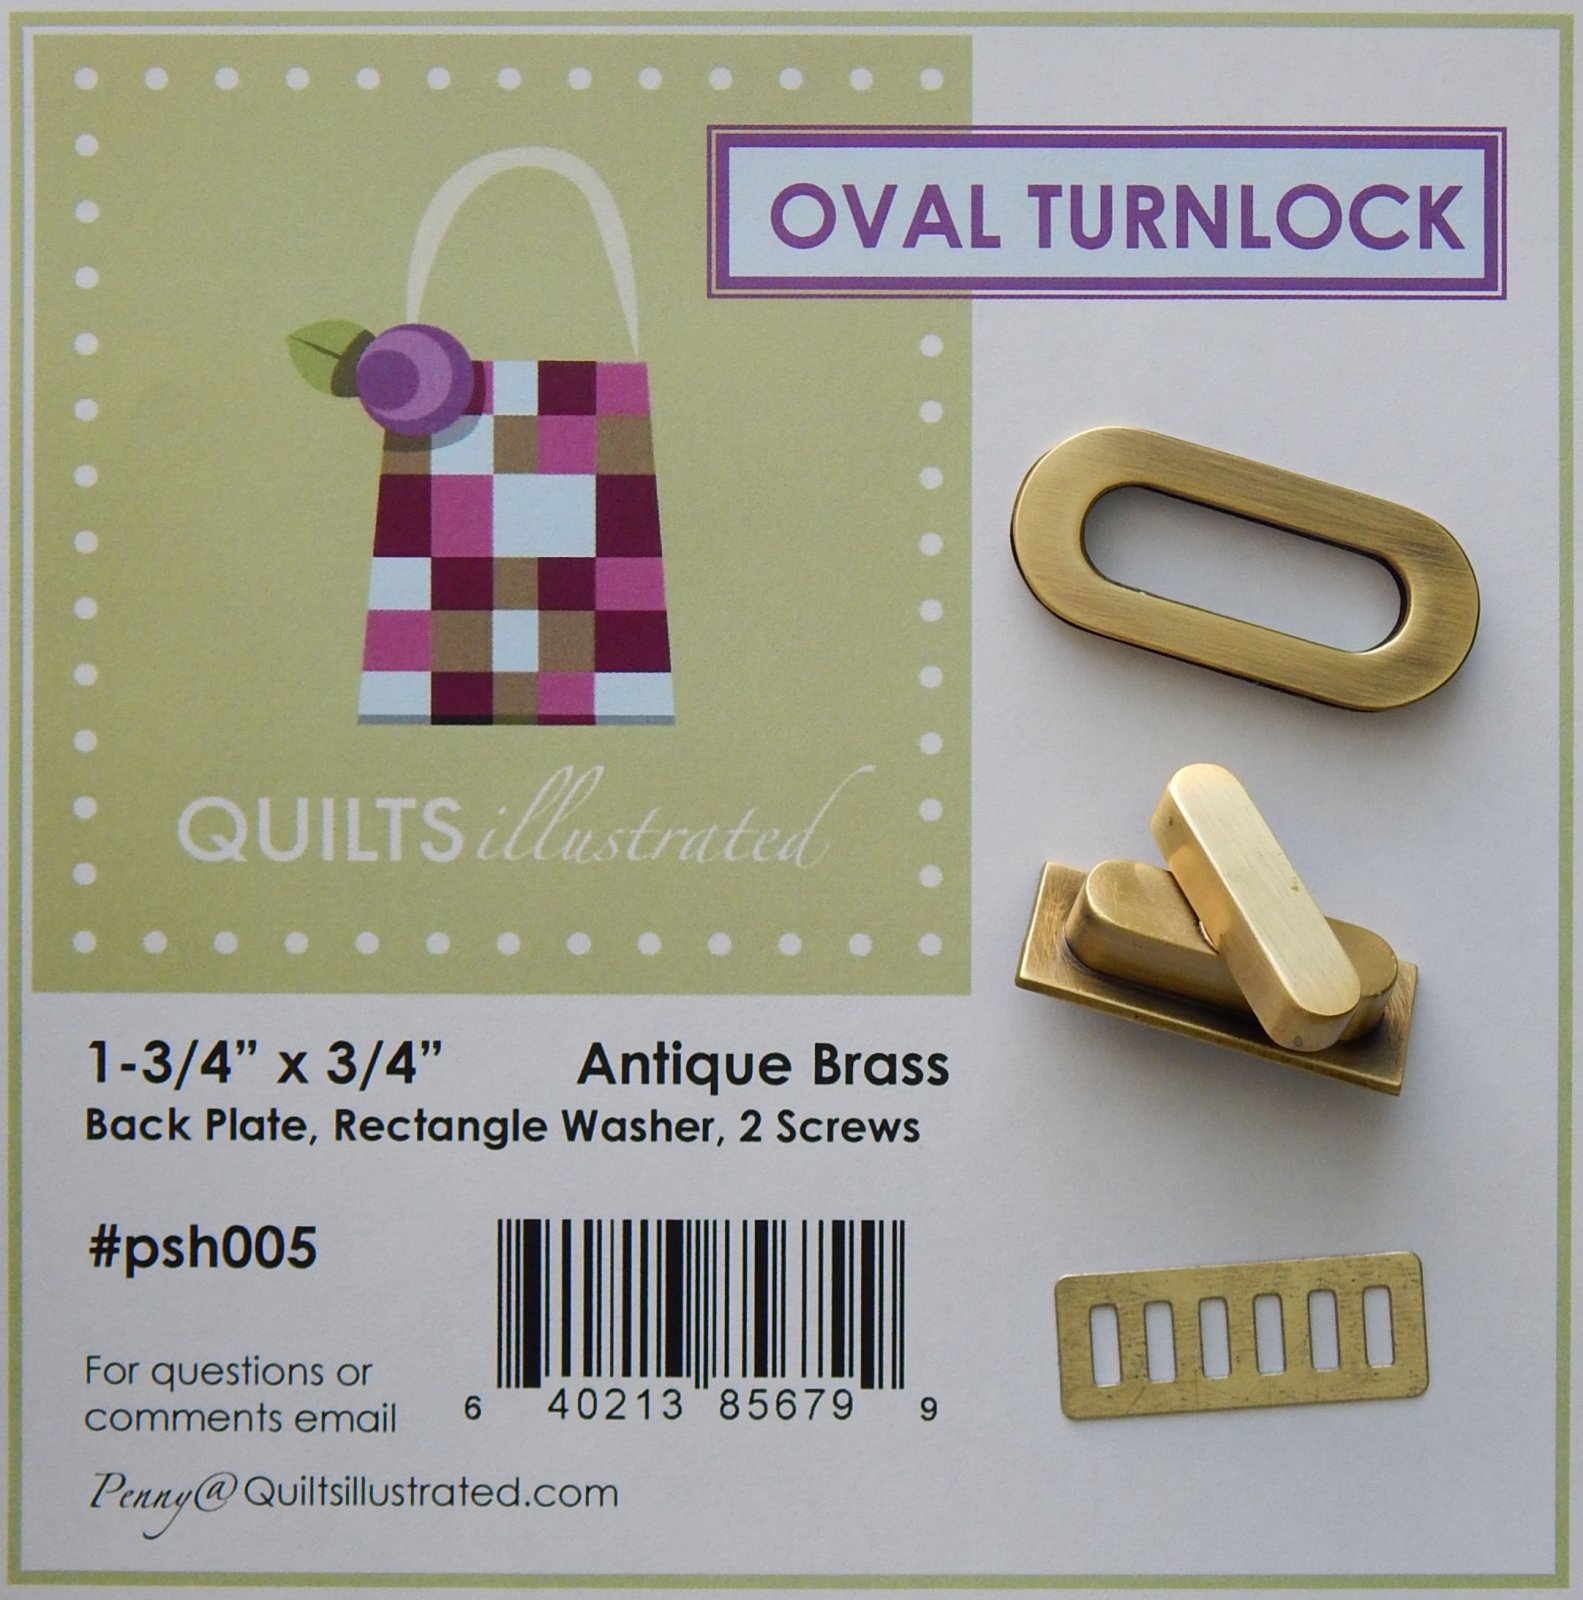 Oval Turnlock Set - Antique Brass (psh005)